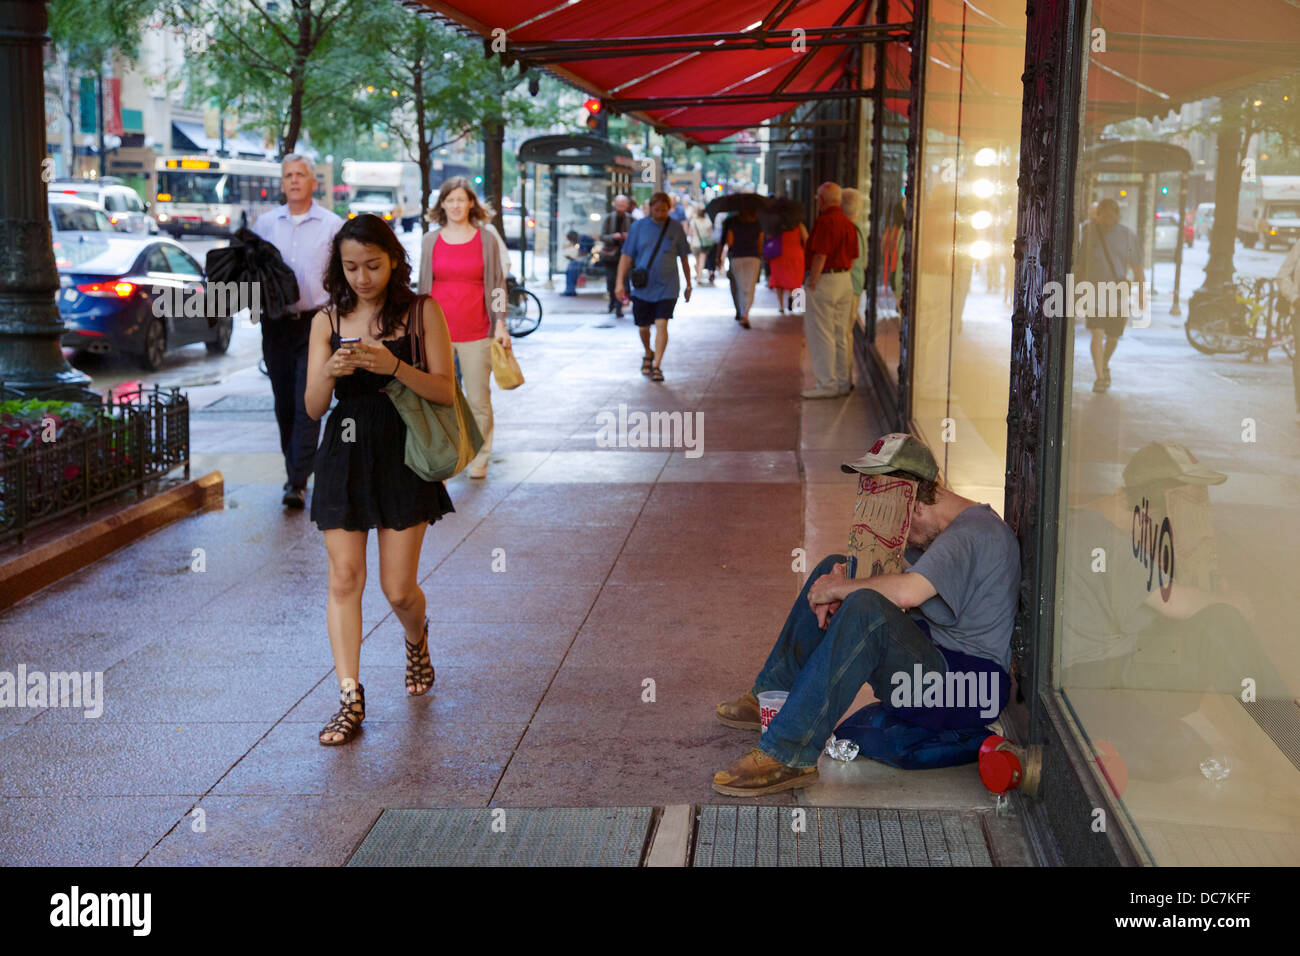 Homeless man, passerby texting. State Street, Chicago Illinois - Stock Image